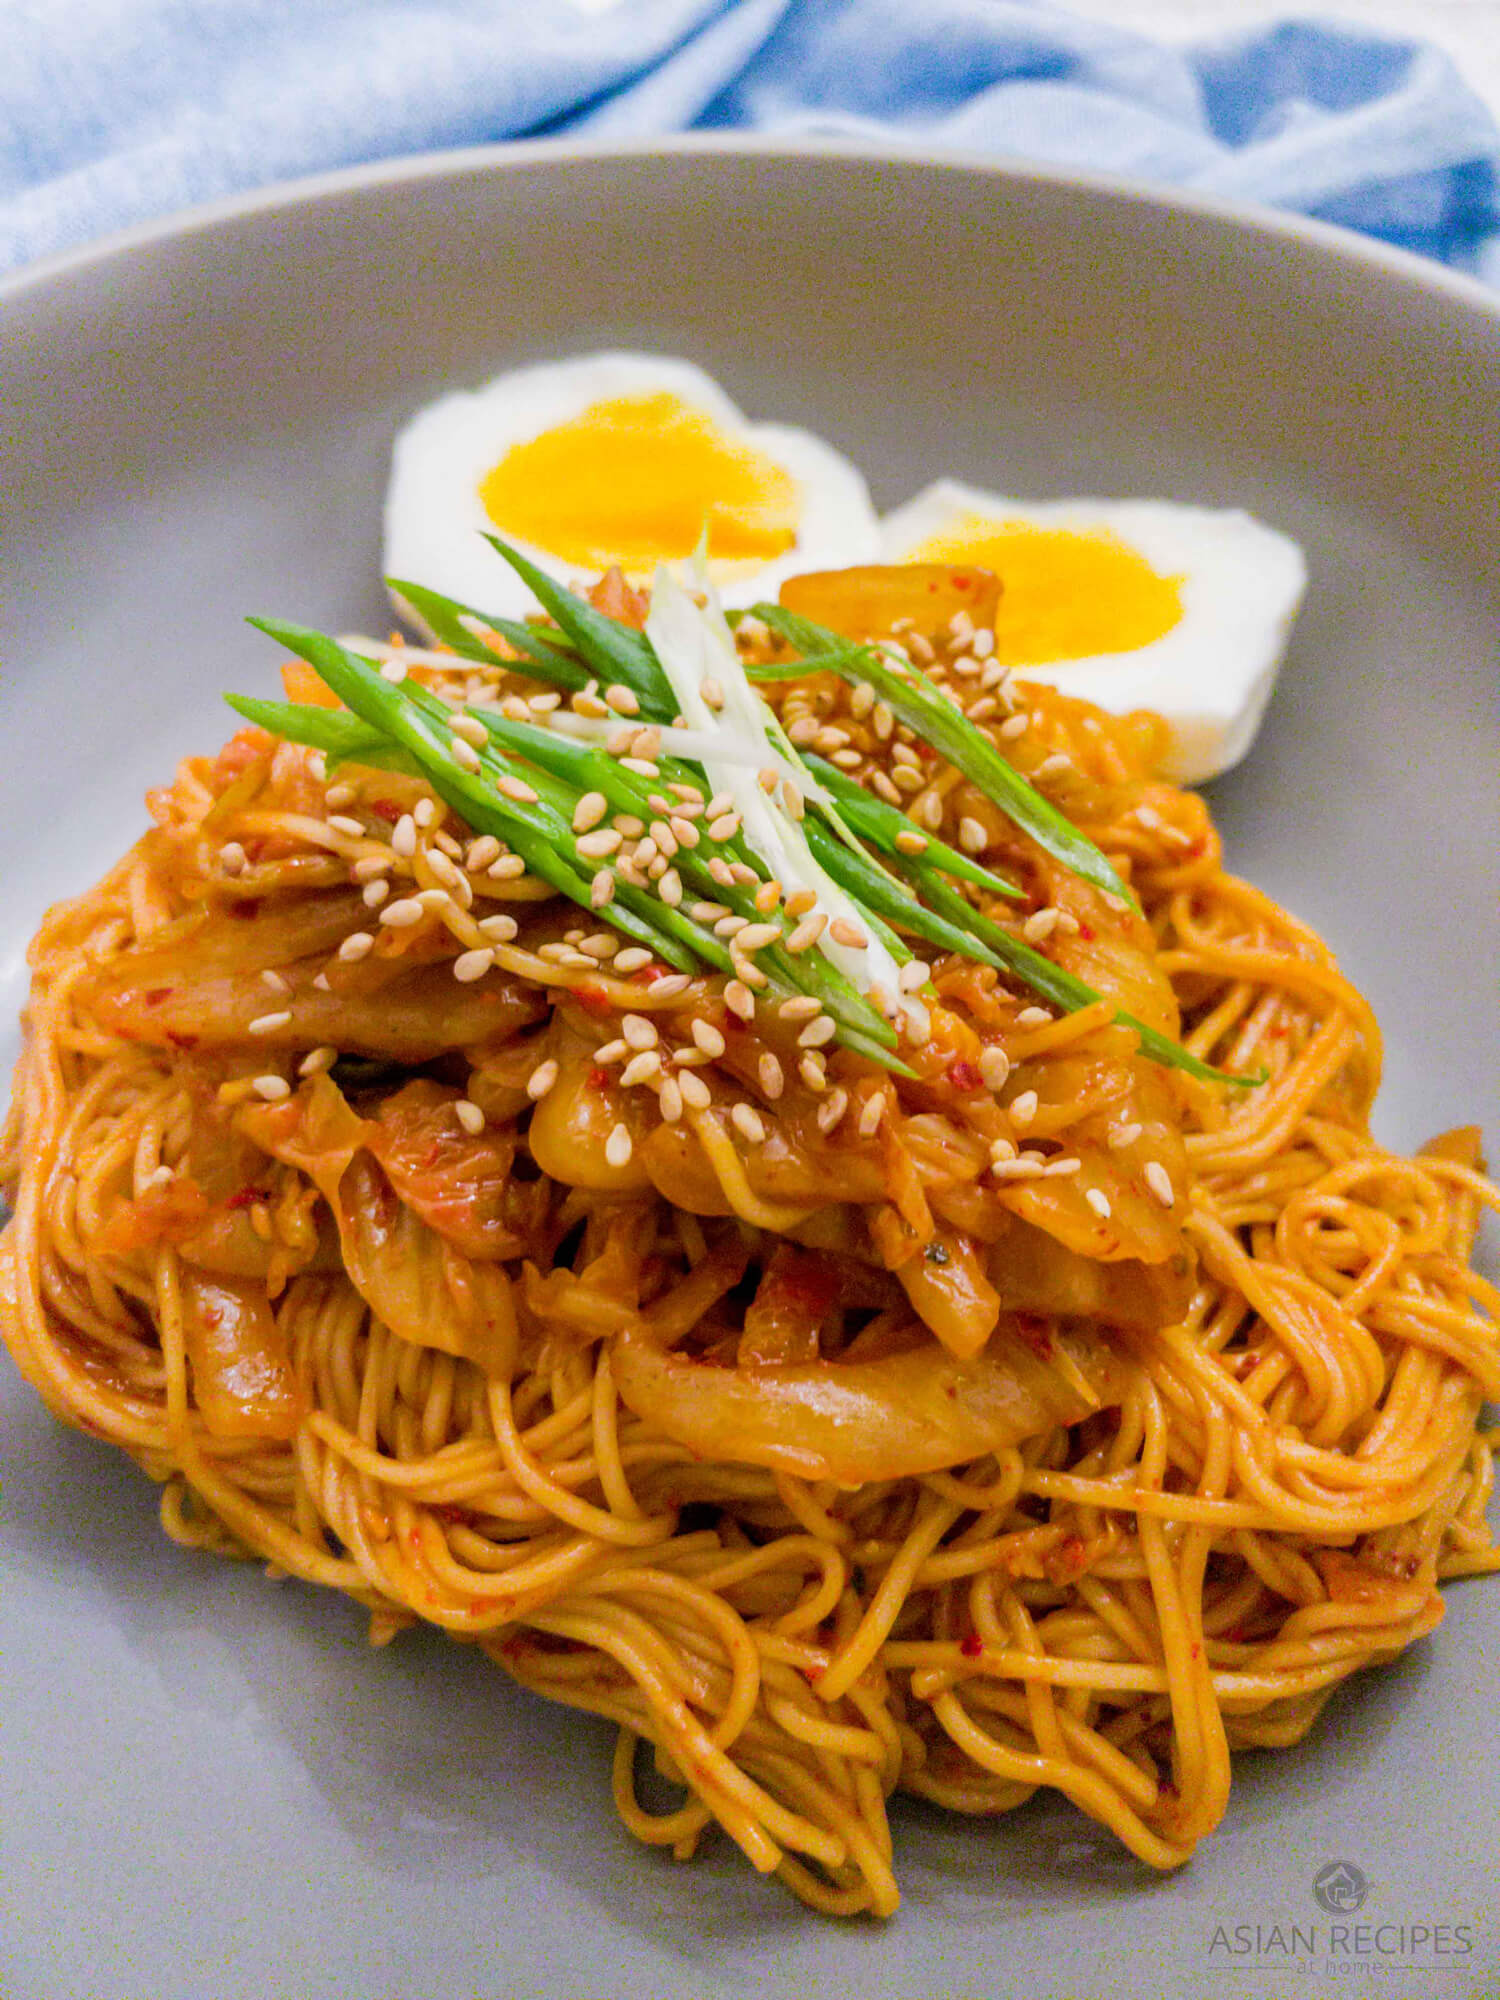 Our spicy cold noodle recipe is covered in a Korean red chili pepper paste (gochujang) sauce with thinly sliced aged kimchi.